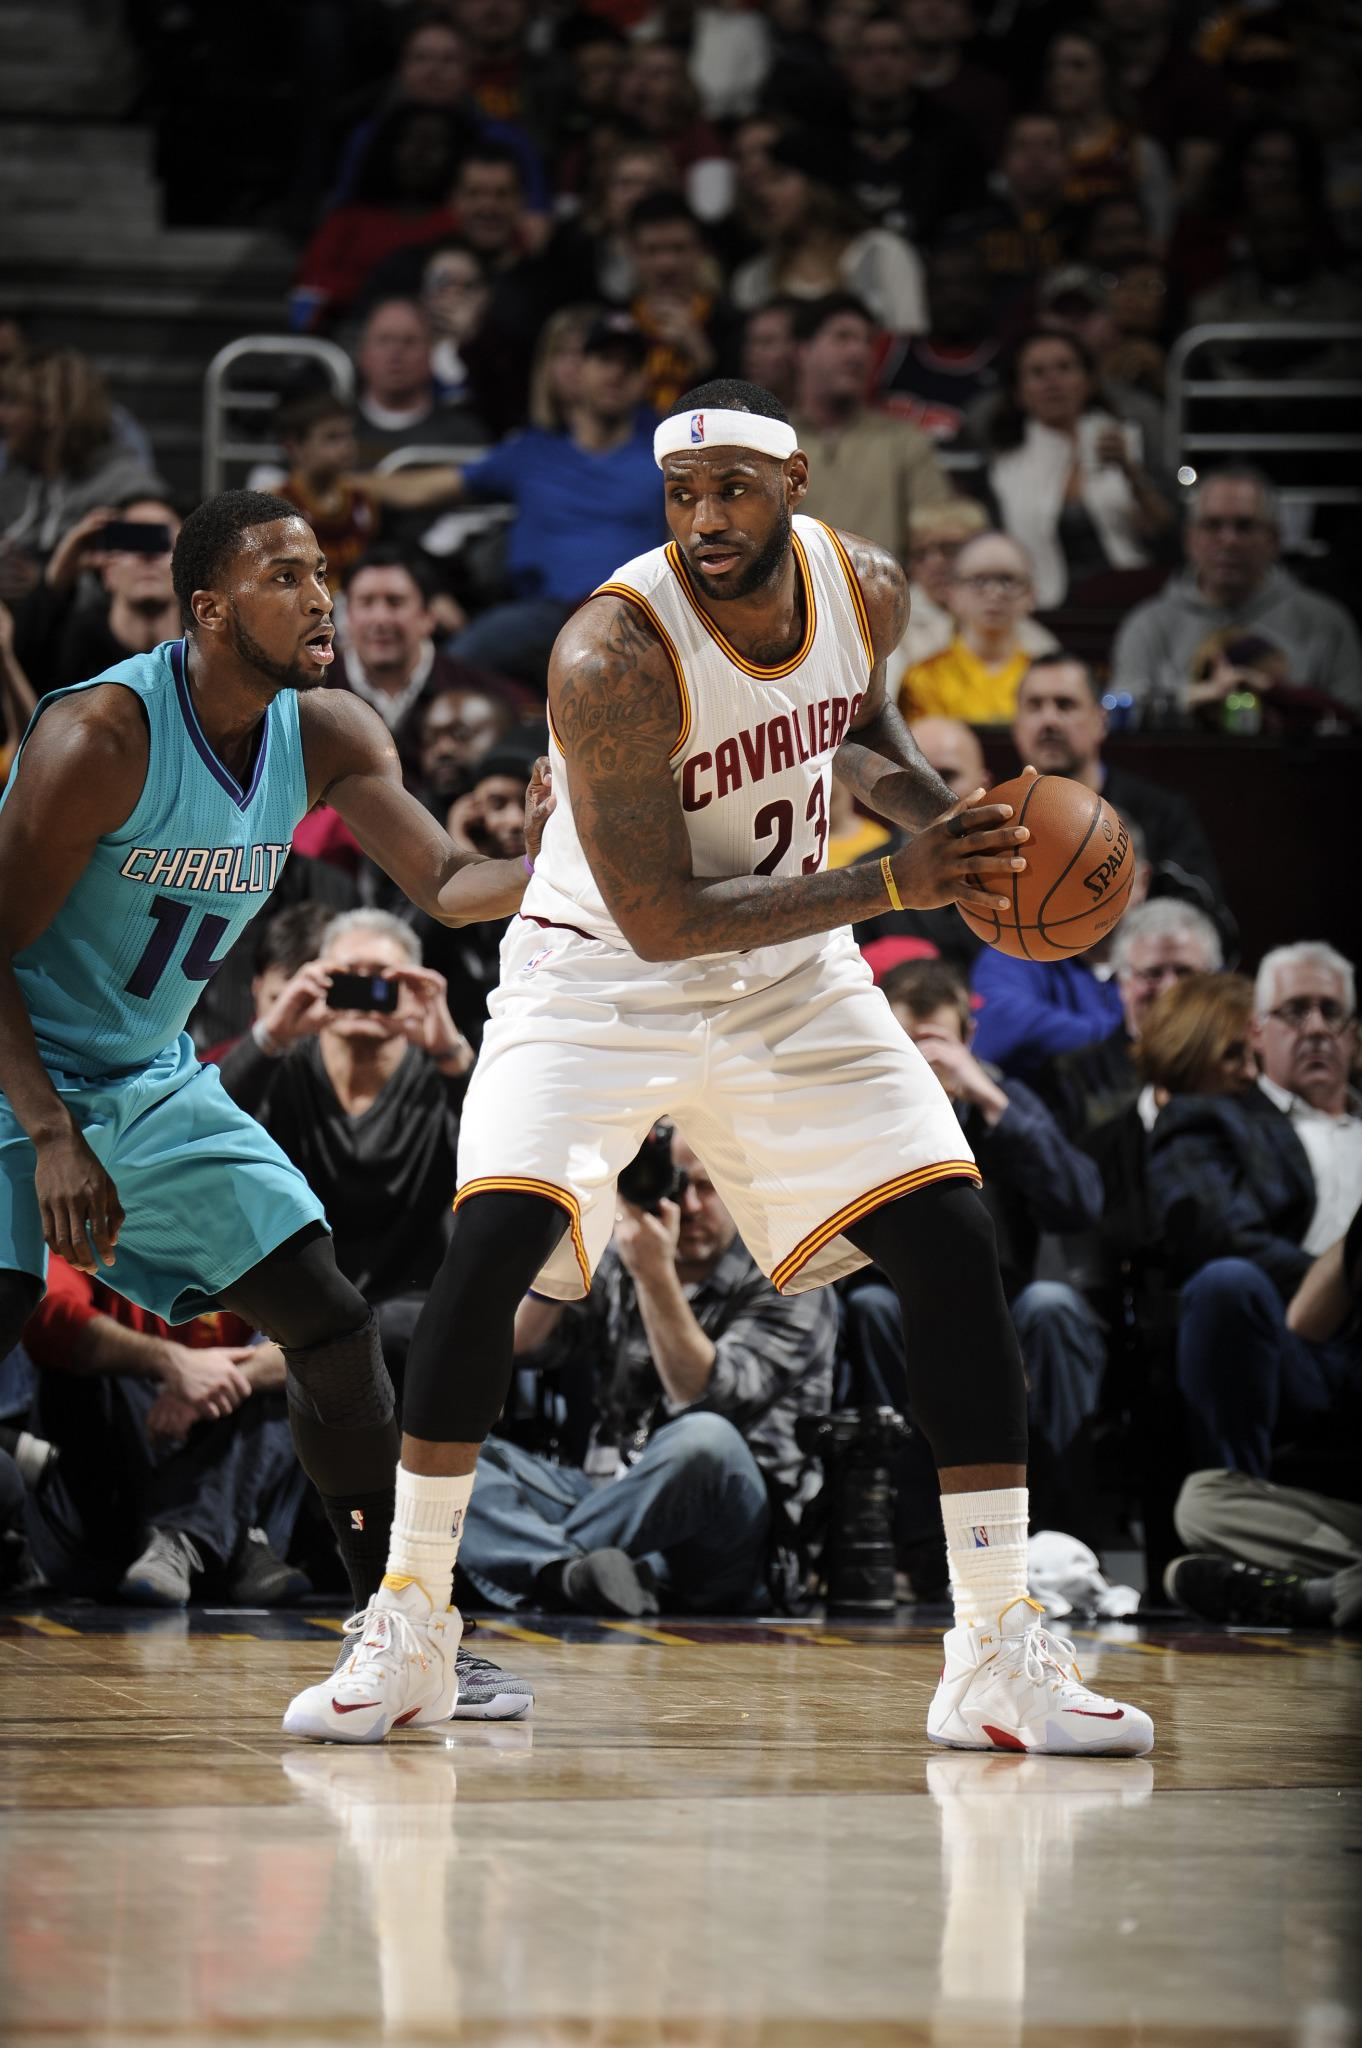 Cleveland puts up a dominant effort as @Cavs coast to a 129-90 W over @Hornets at the Q. King James went for 25-9-6 http://t.co/jf4buGIInZ